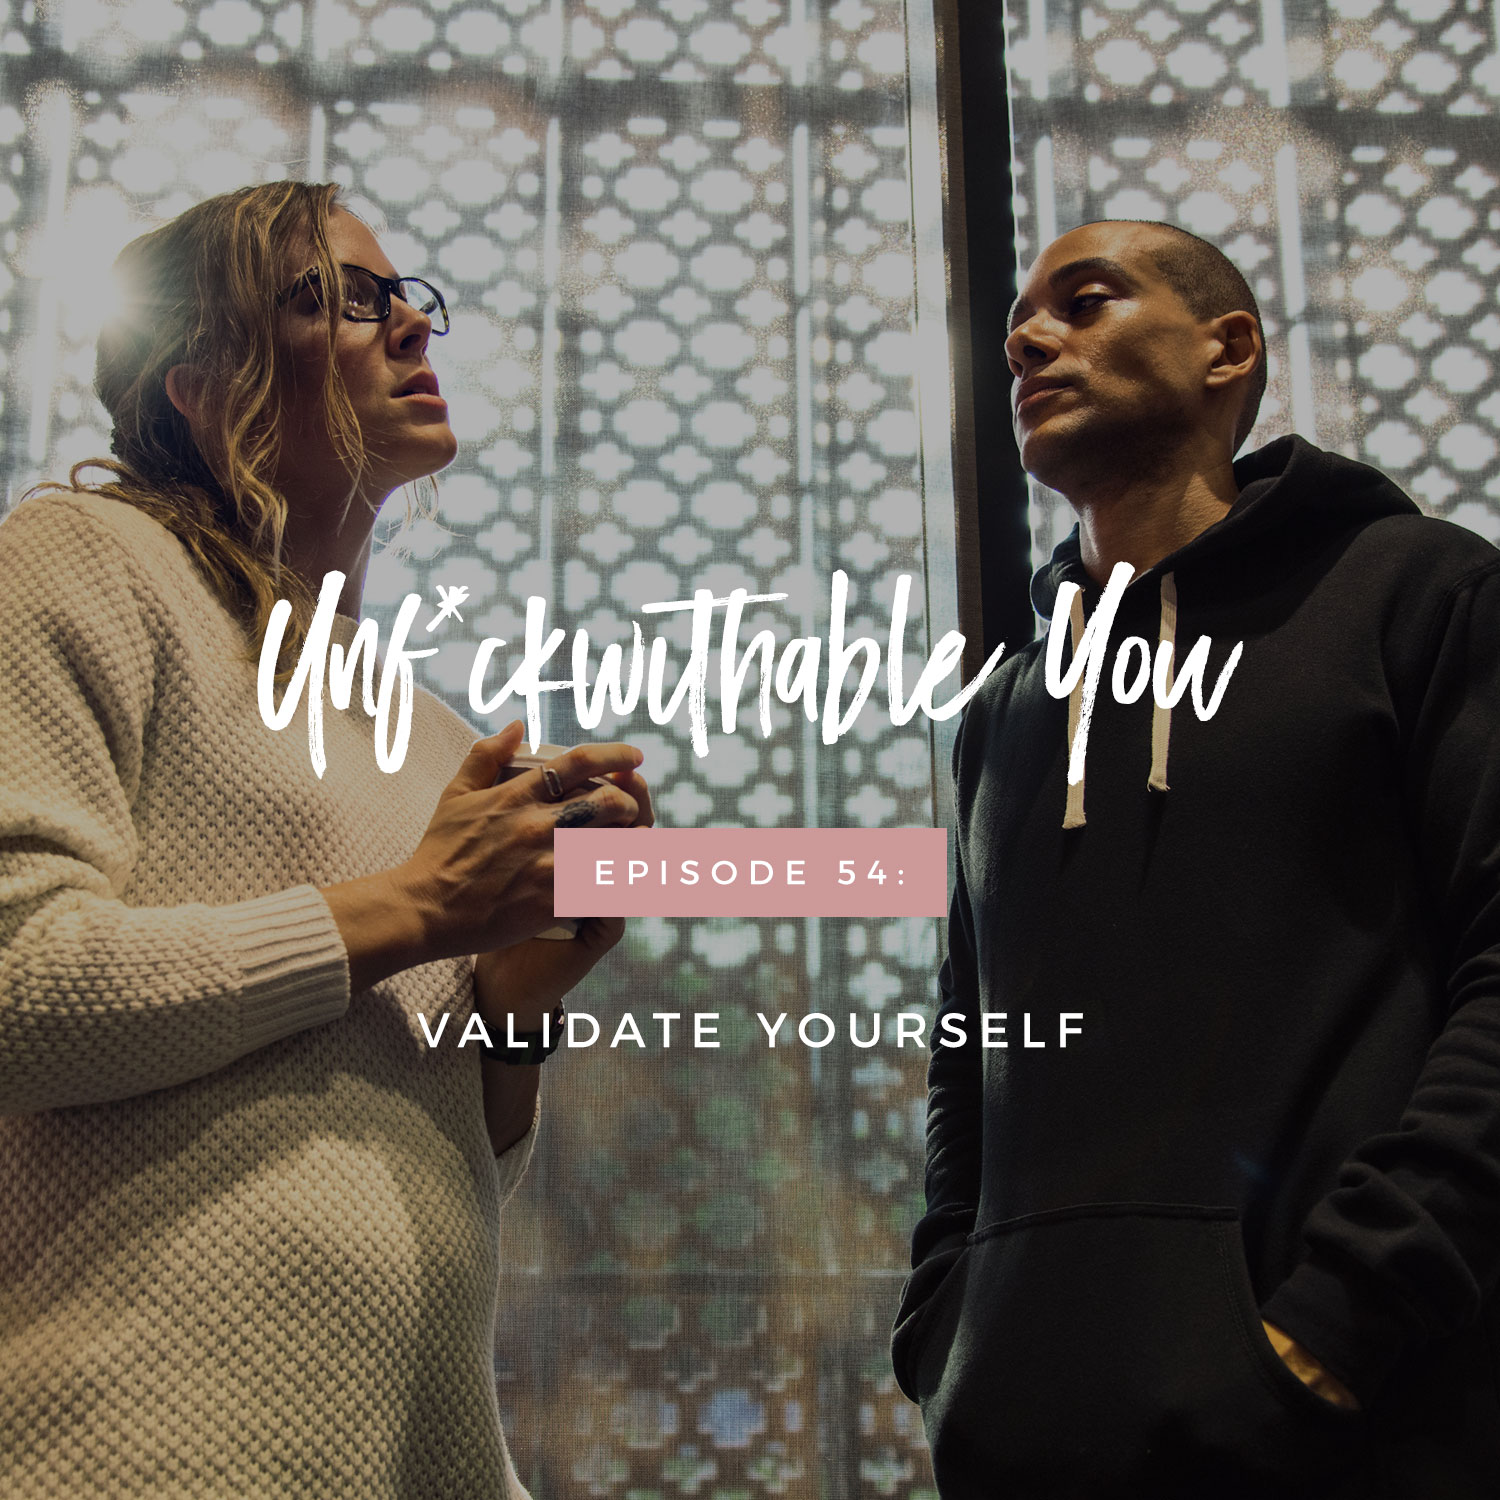 Unf*ckwithable You Episode #54: Validate Yourself